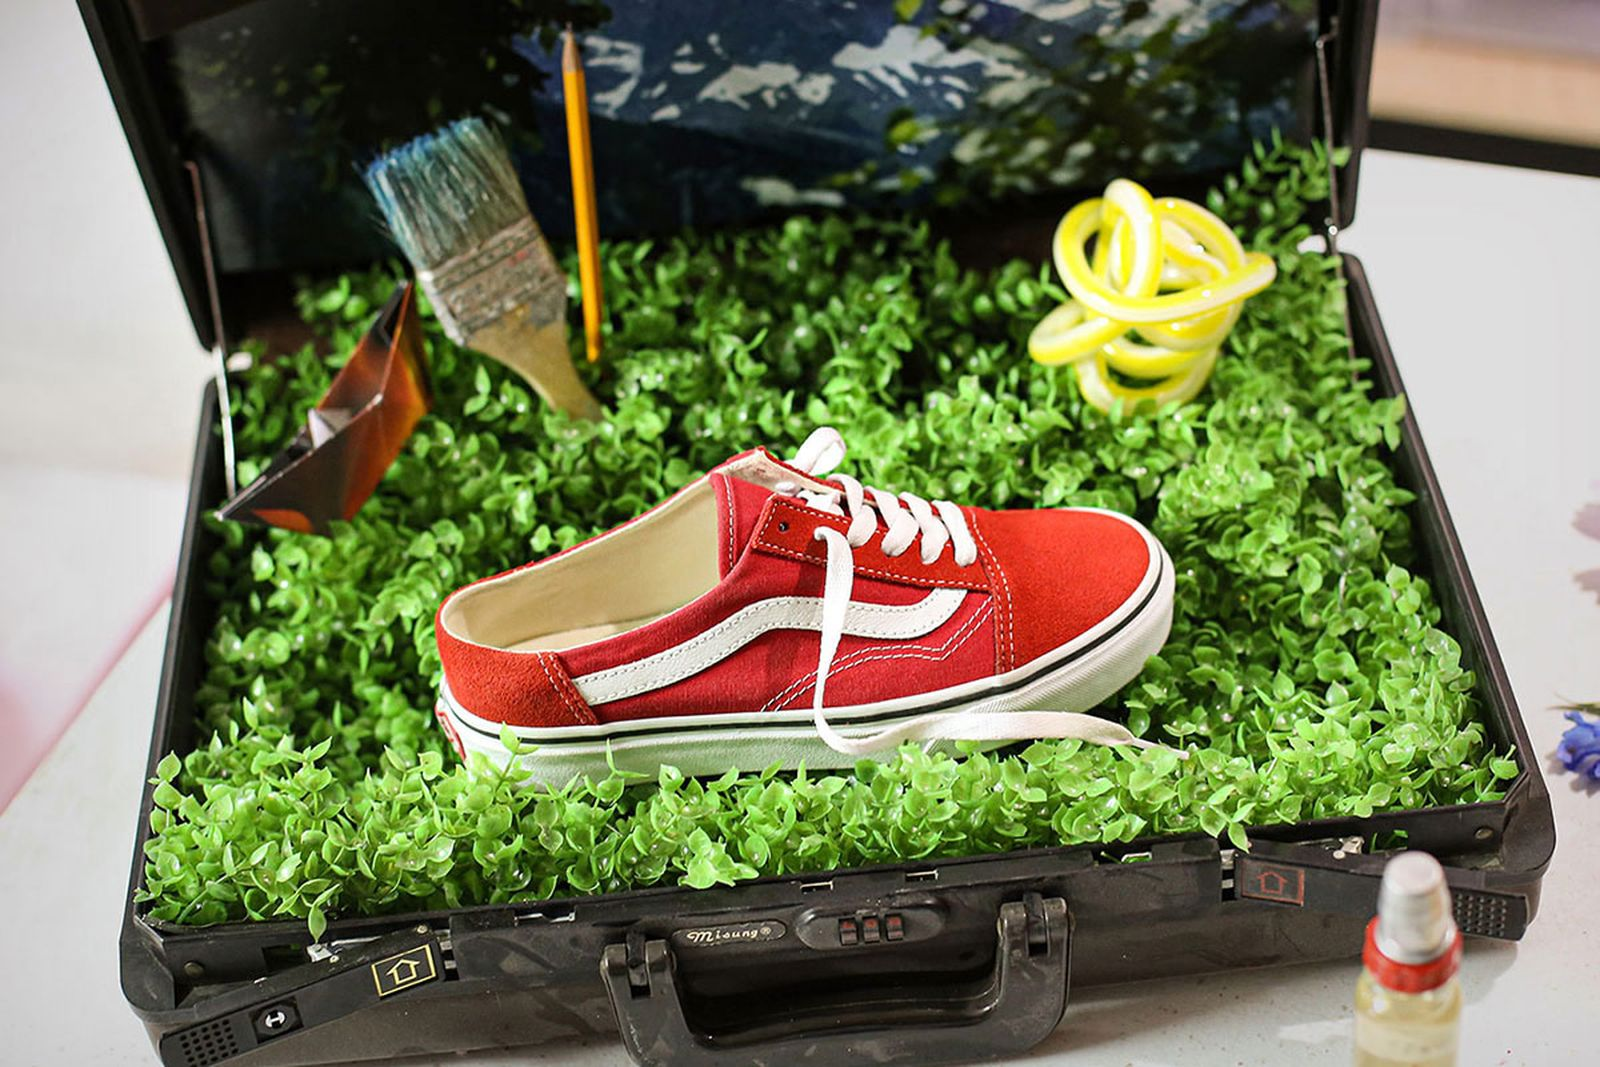 Red Vans Mule Old Skool with white side stripe